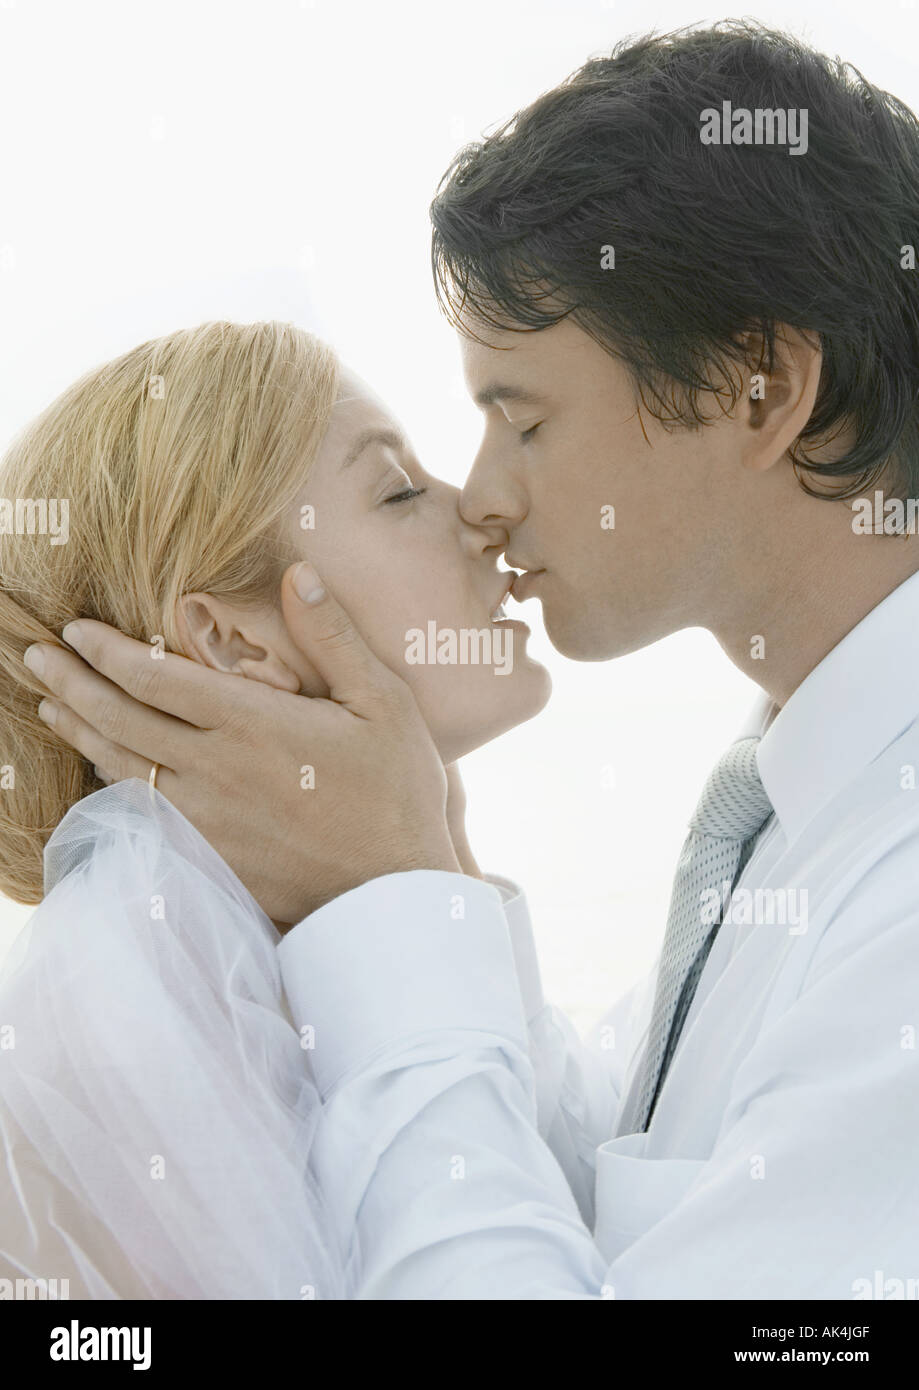 Bride and groom kissing, portrait - Stock Image